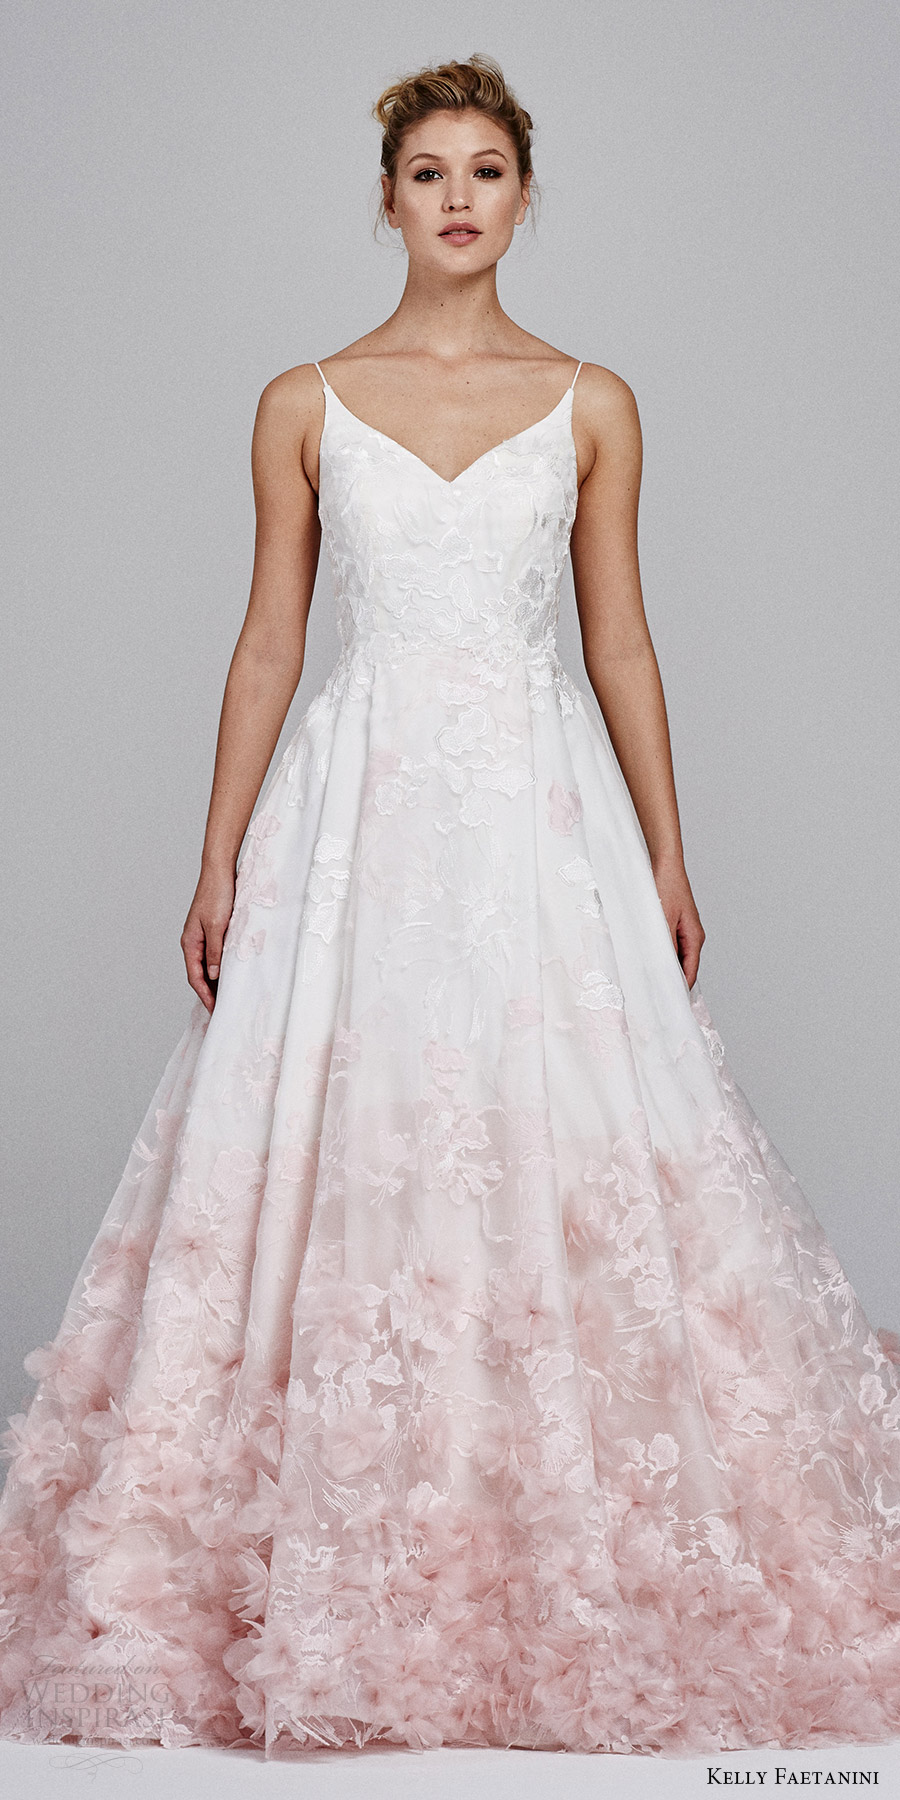 kelly faetanini fall 2017 sleeveless vneck silk organz petal embellished skirt blush ombre ball gown wedding dress (willow) zfv